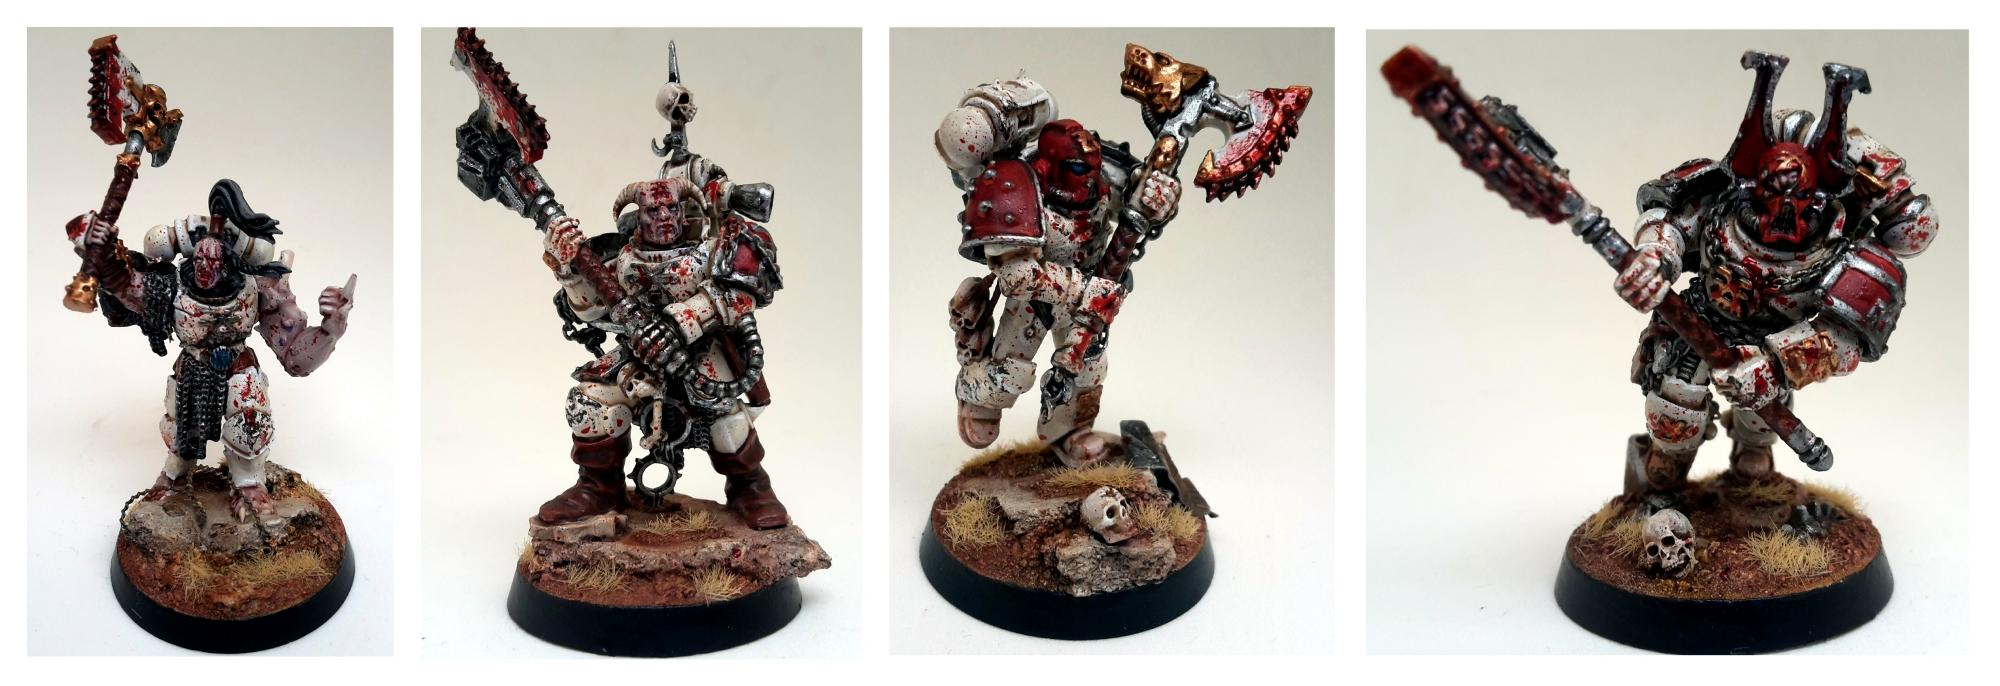 Berserkers, Chaos Space Marines, Conversion, World Eaters